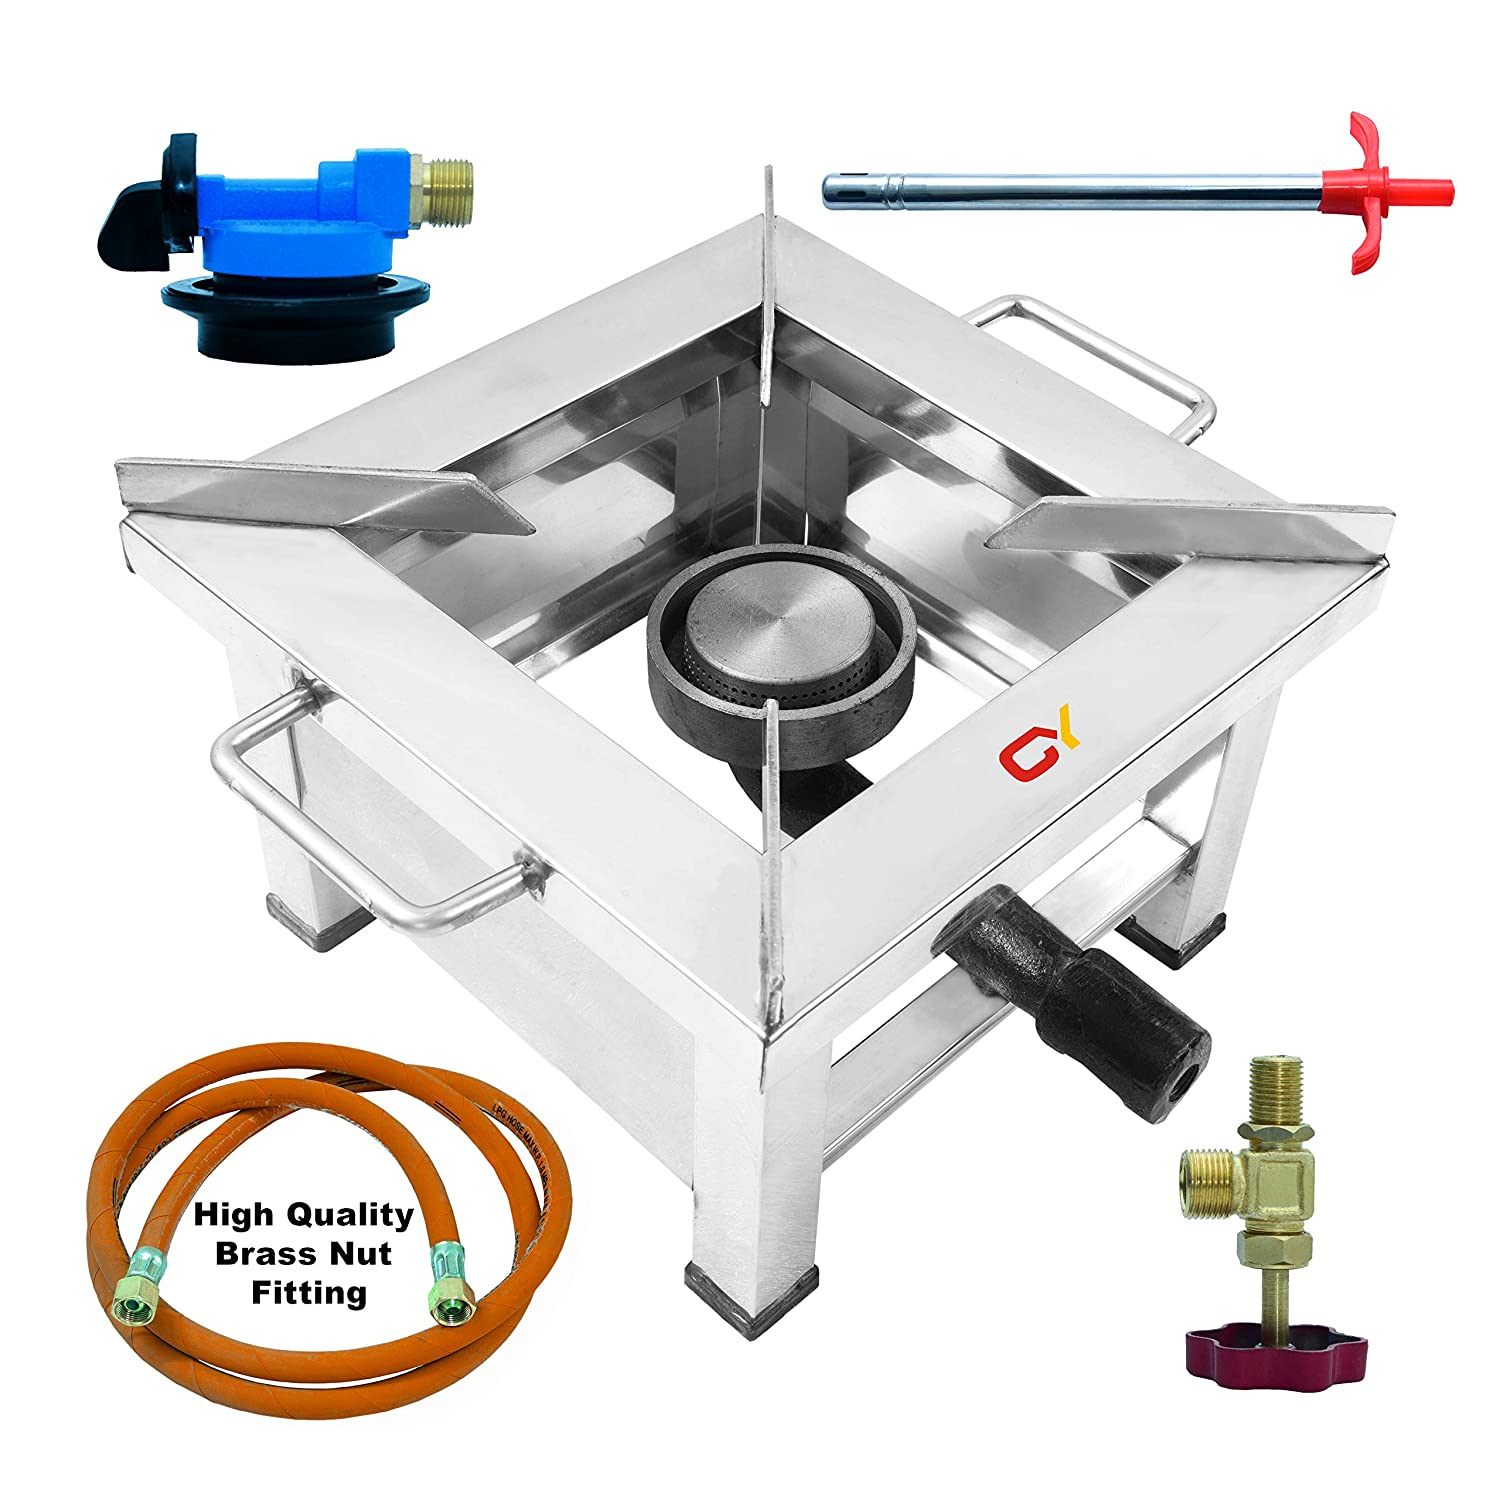 CAY Stainless Steel Single Burner Gas Stove, Silver